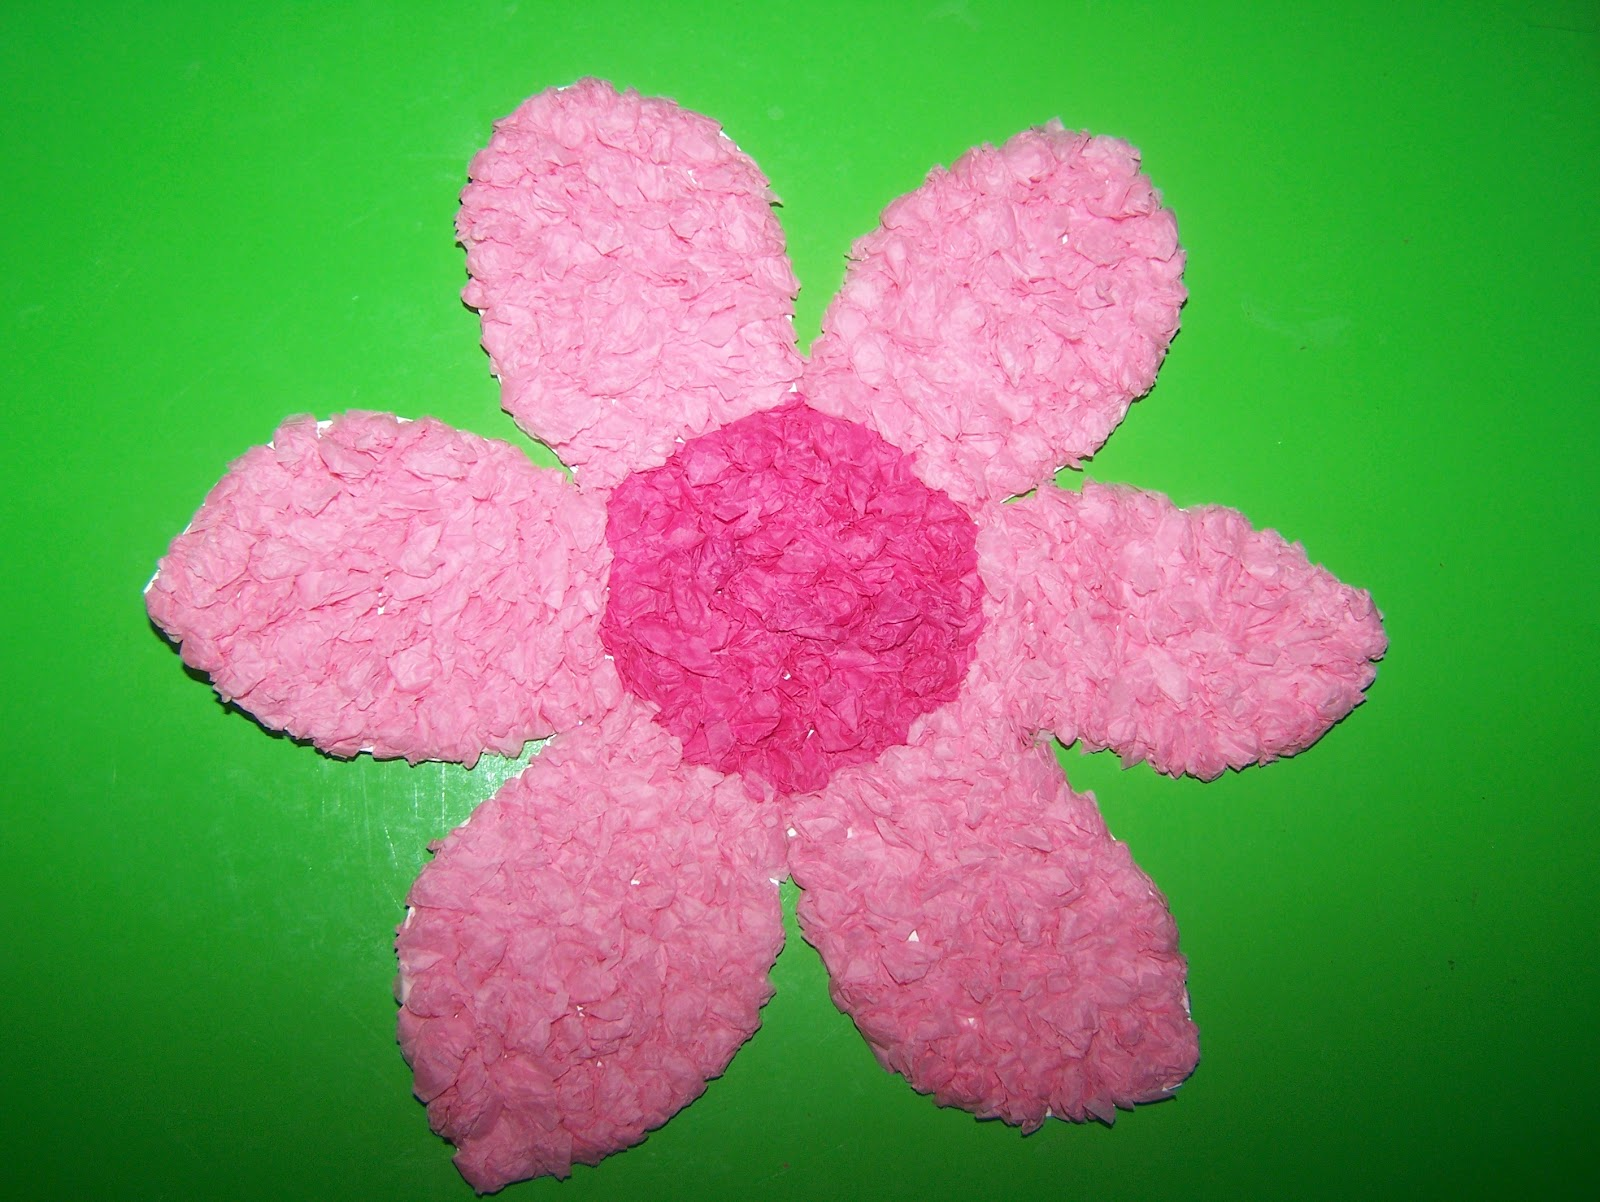 James&May Arts and Crafts Blog: Tissue Paper Flowers